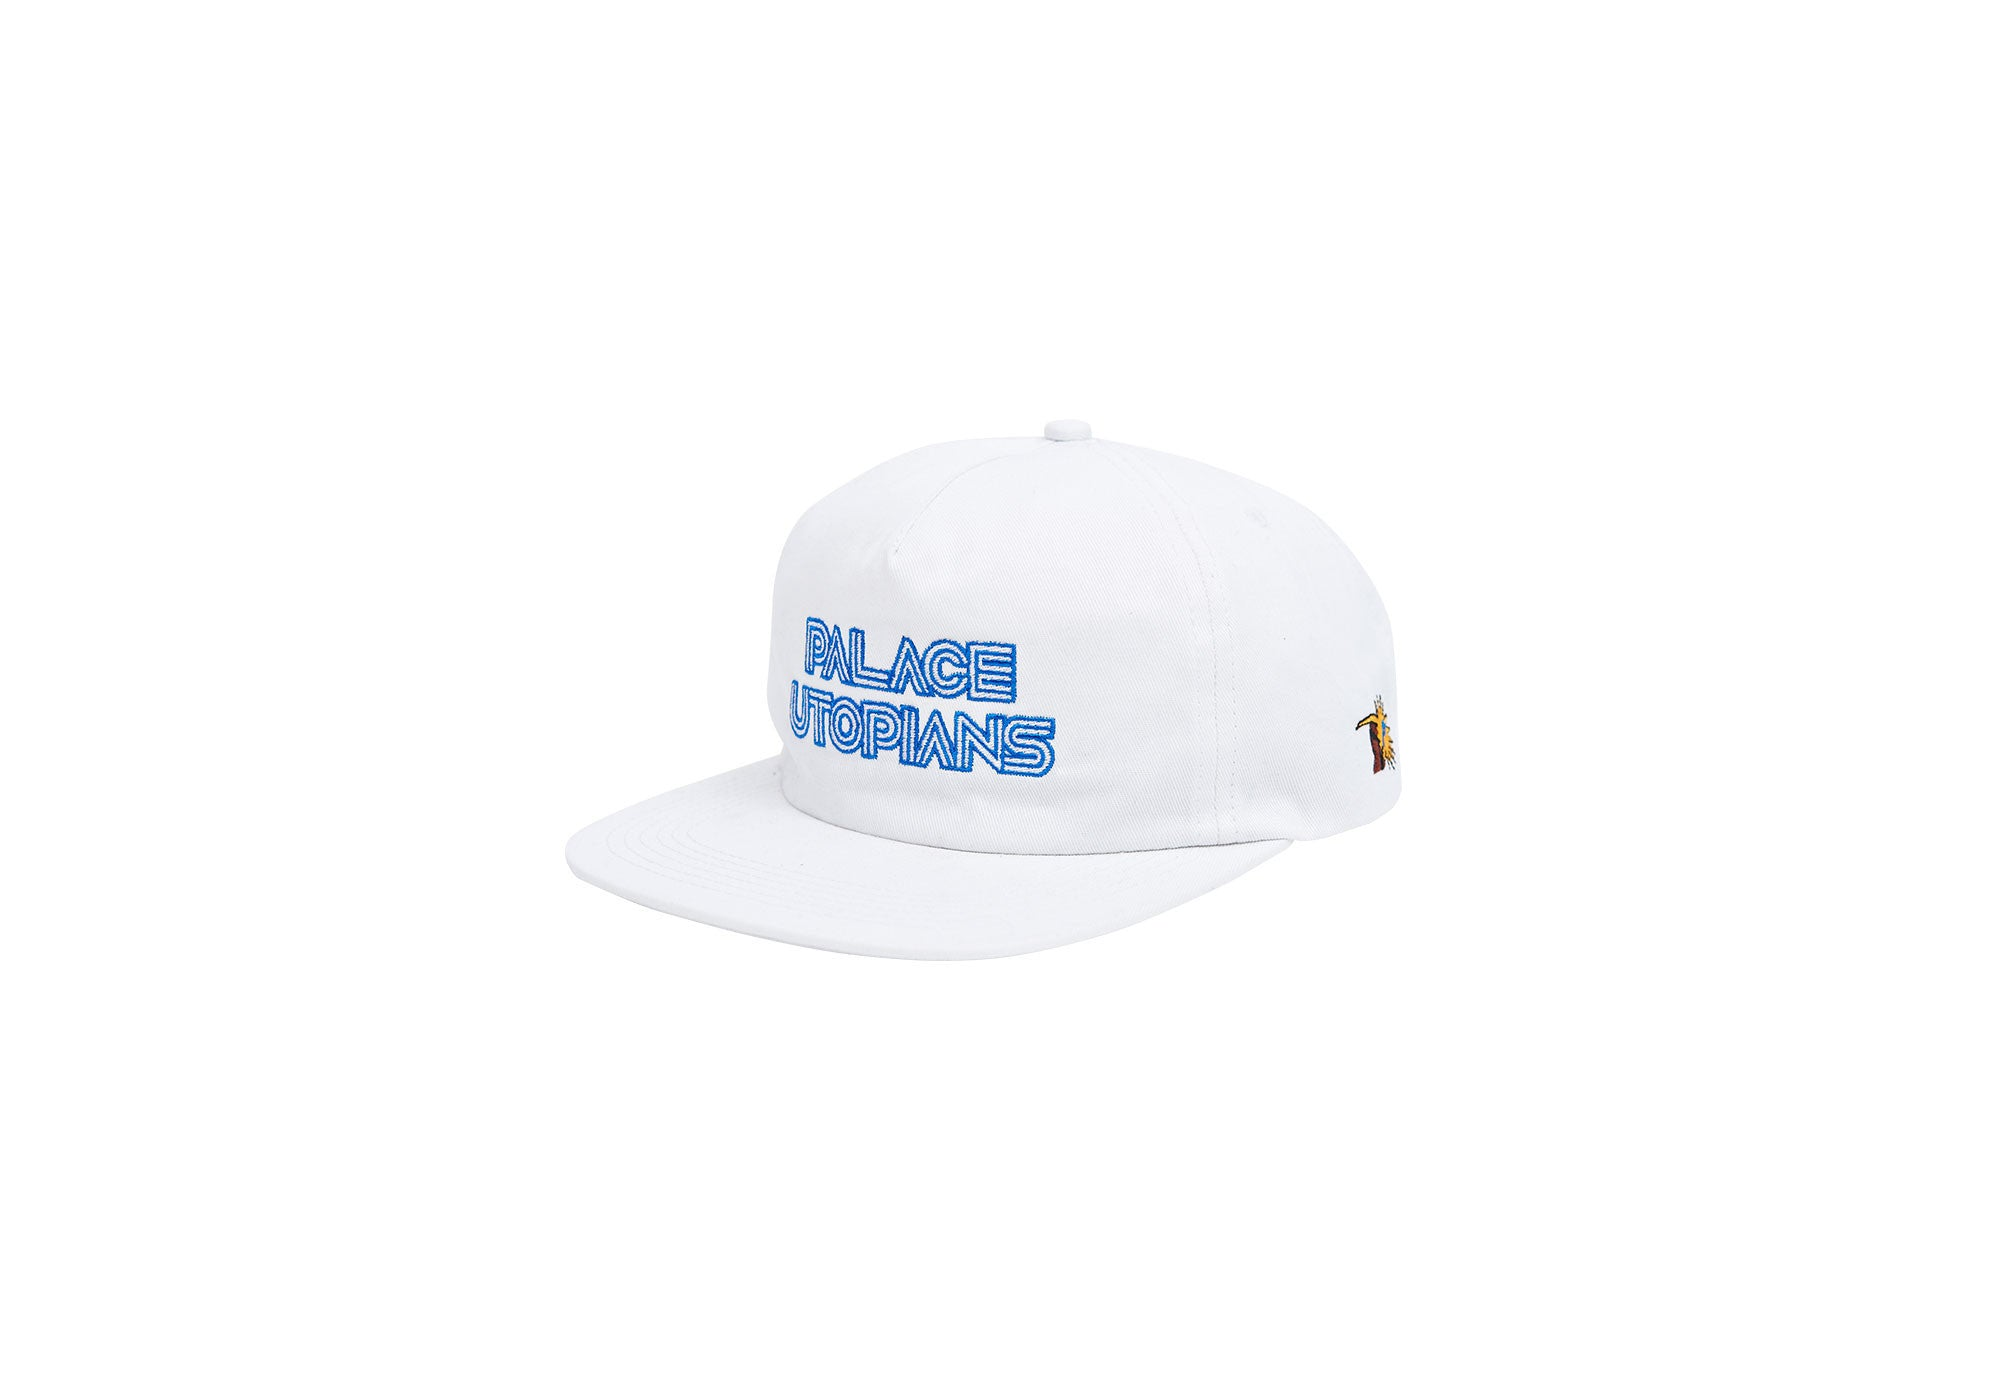 PALACE UTOPIANS 5-PANEL WHITE